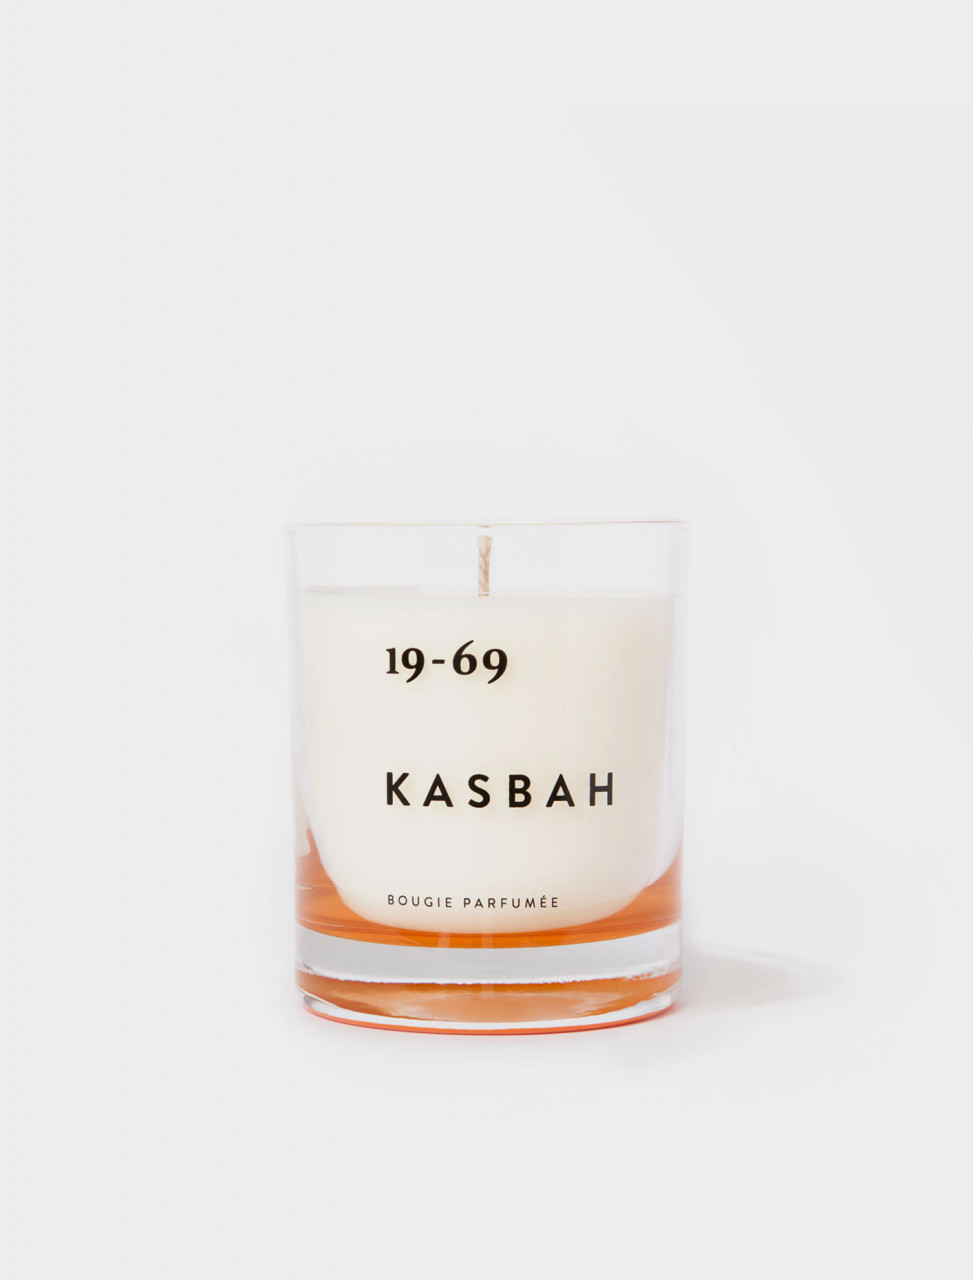 305-900025 19-69 KASBAH SCENTED CANDLE